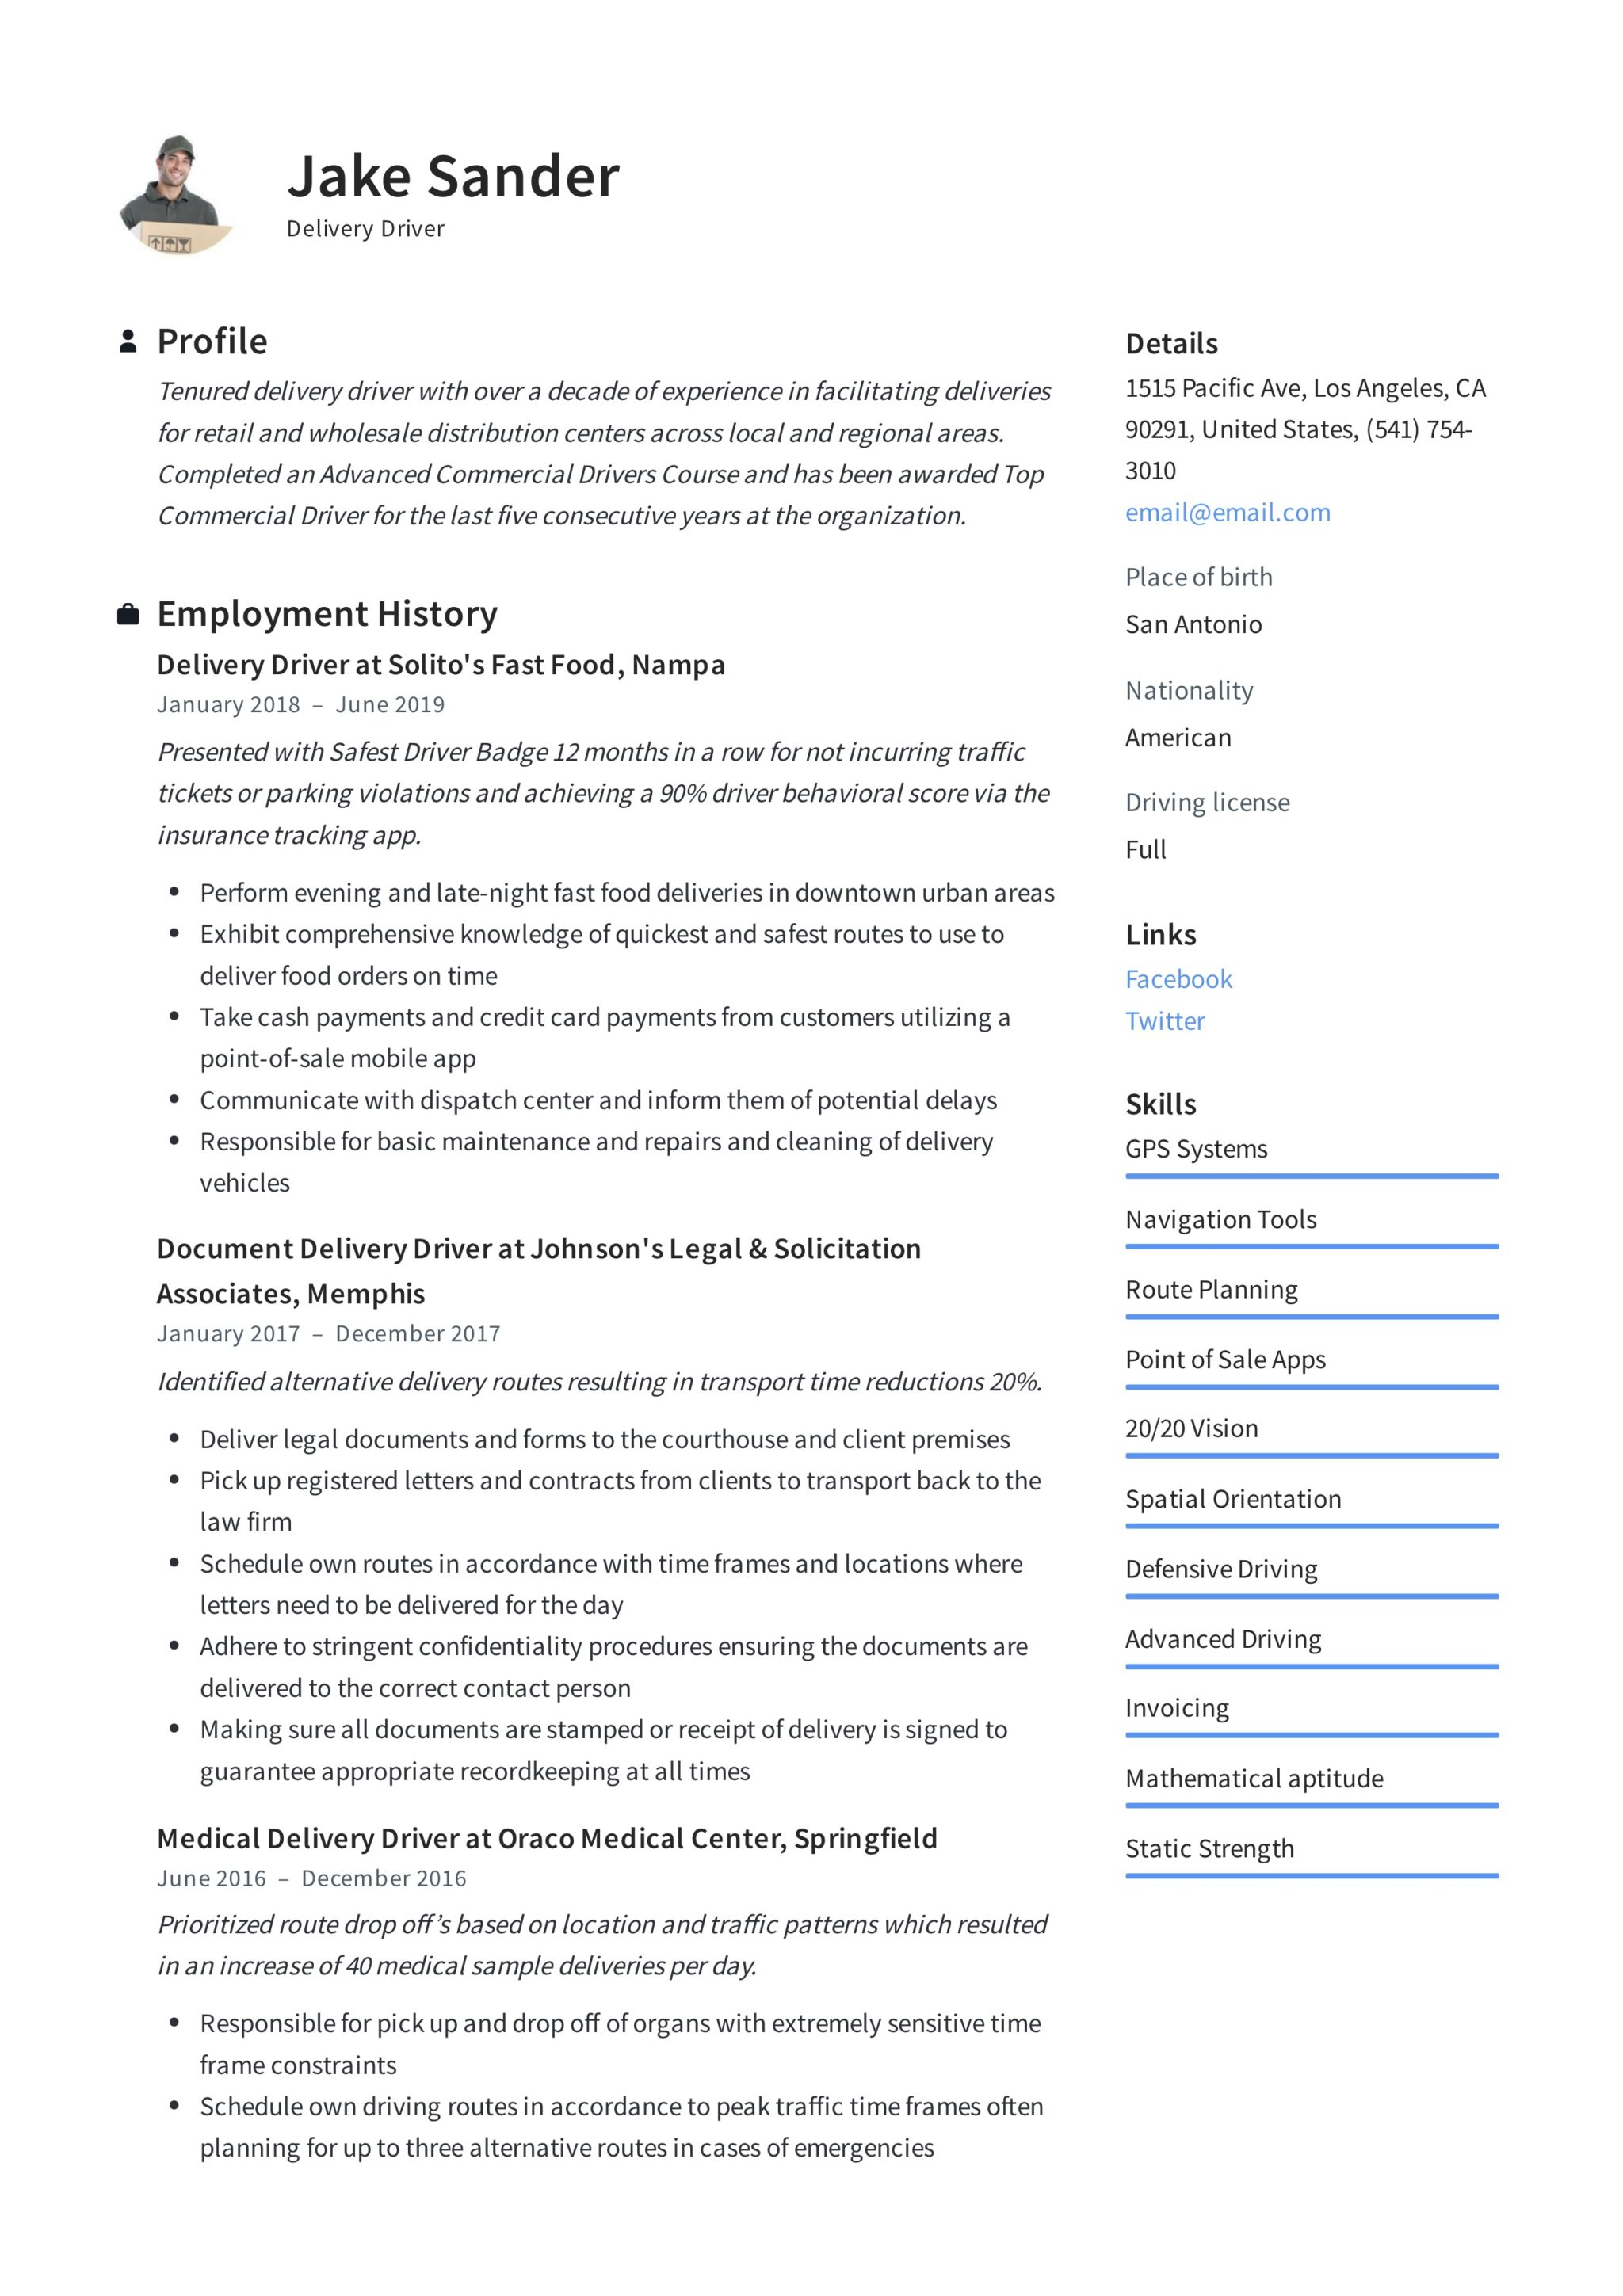 professional driver resume example 2019